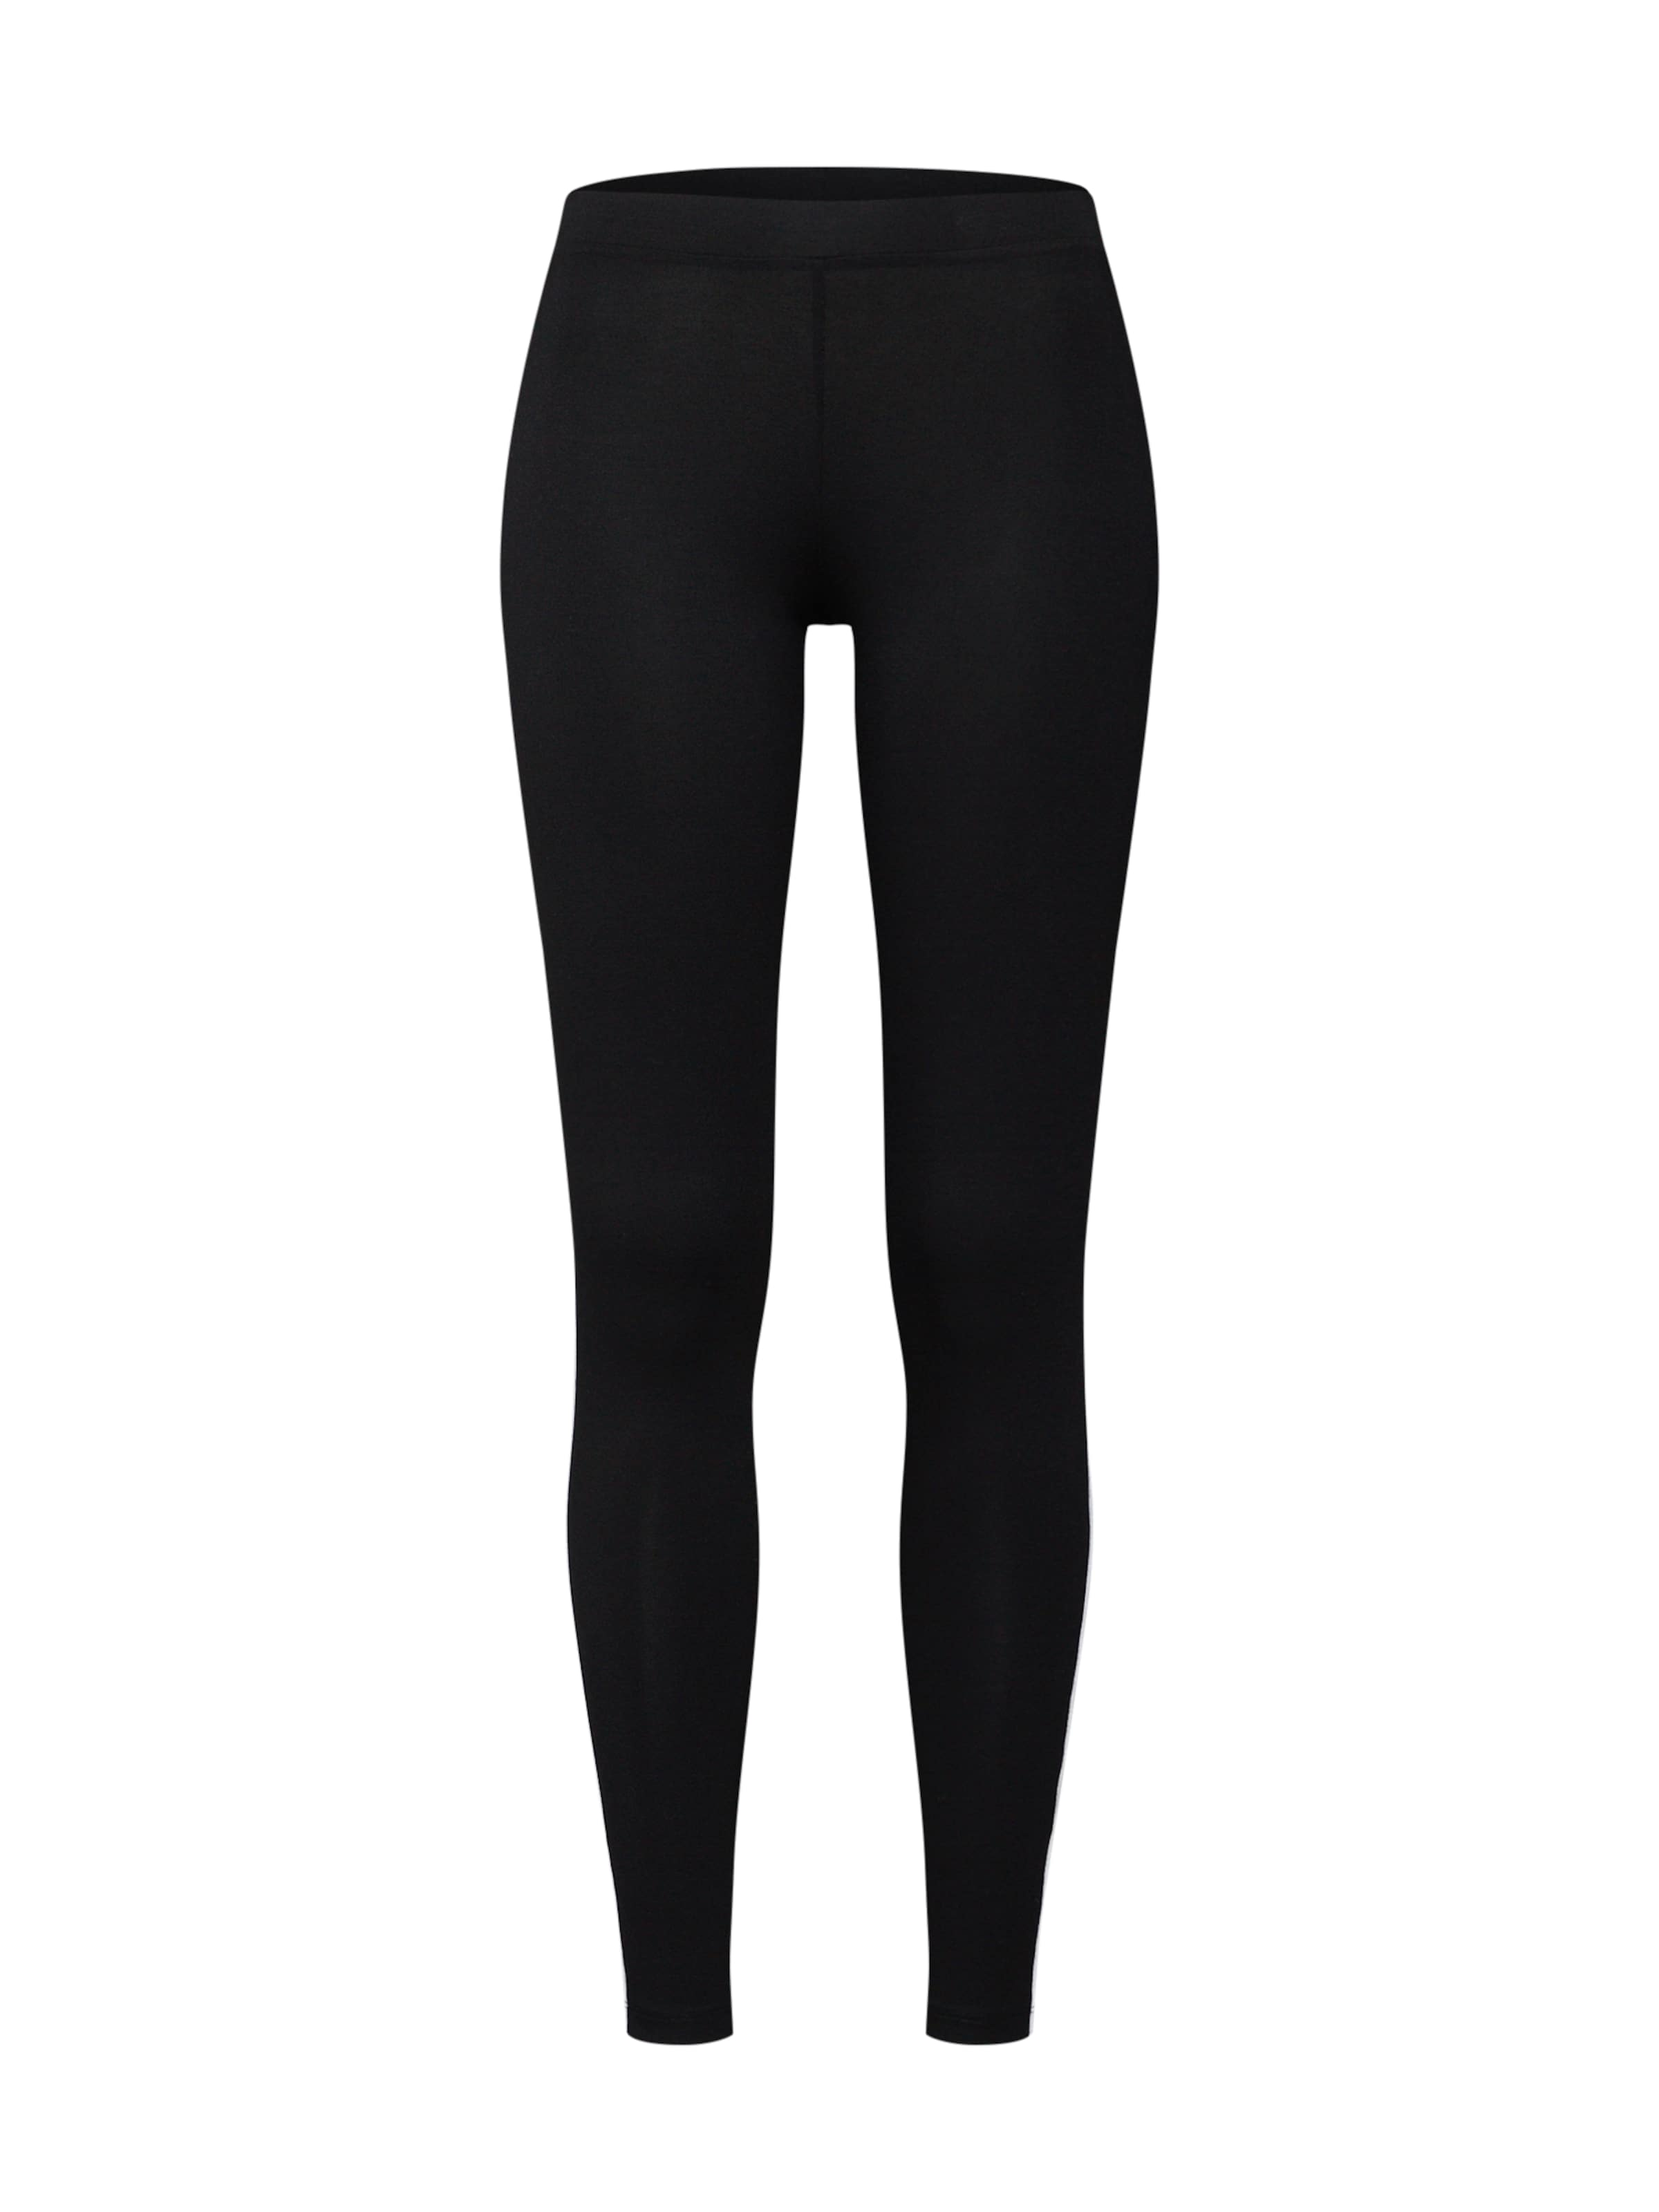 'malena' You NoirBlanc Pantalon En About uOkPZiX